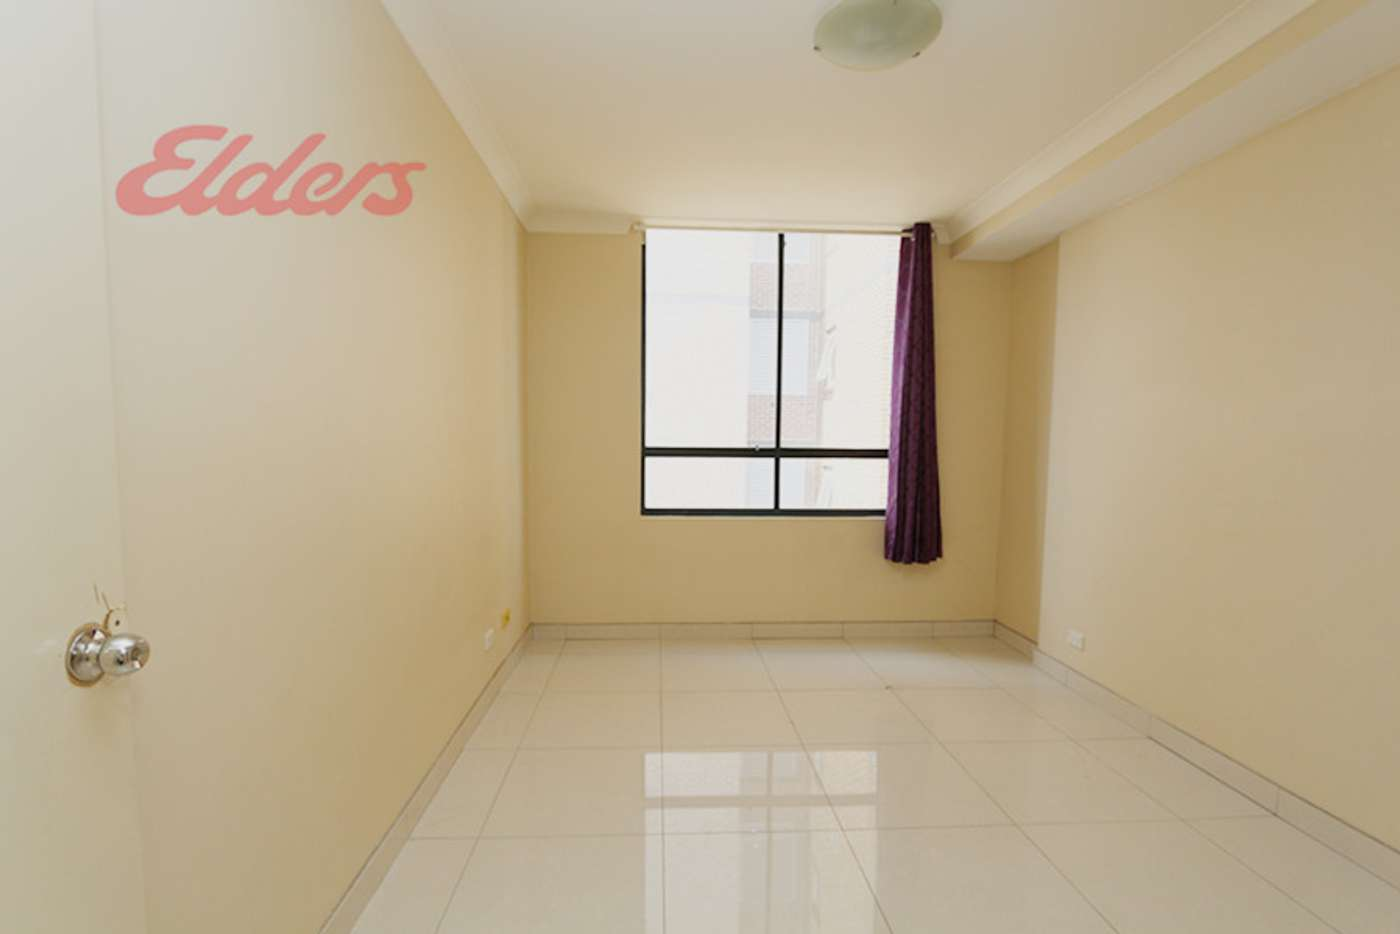 Sixth view of Homely apartment listing, 2618/62 Queen Street, Auburn NSW 2144